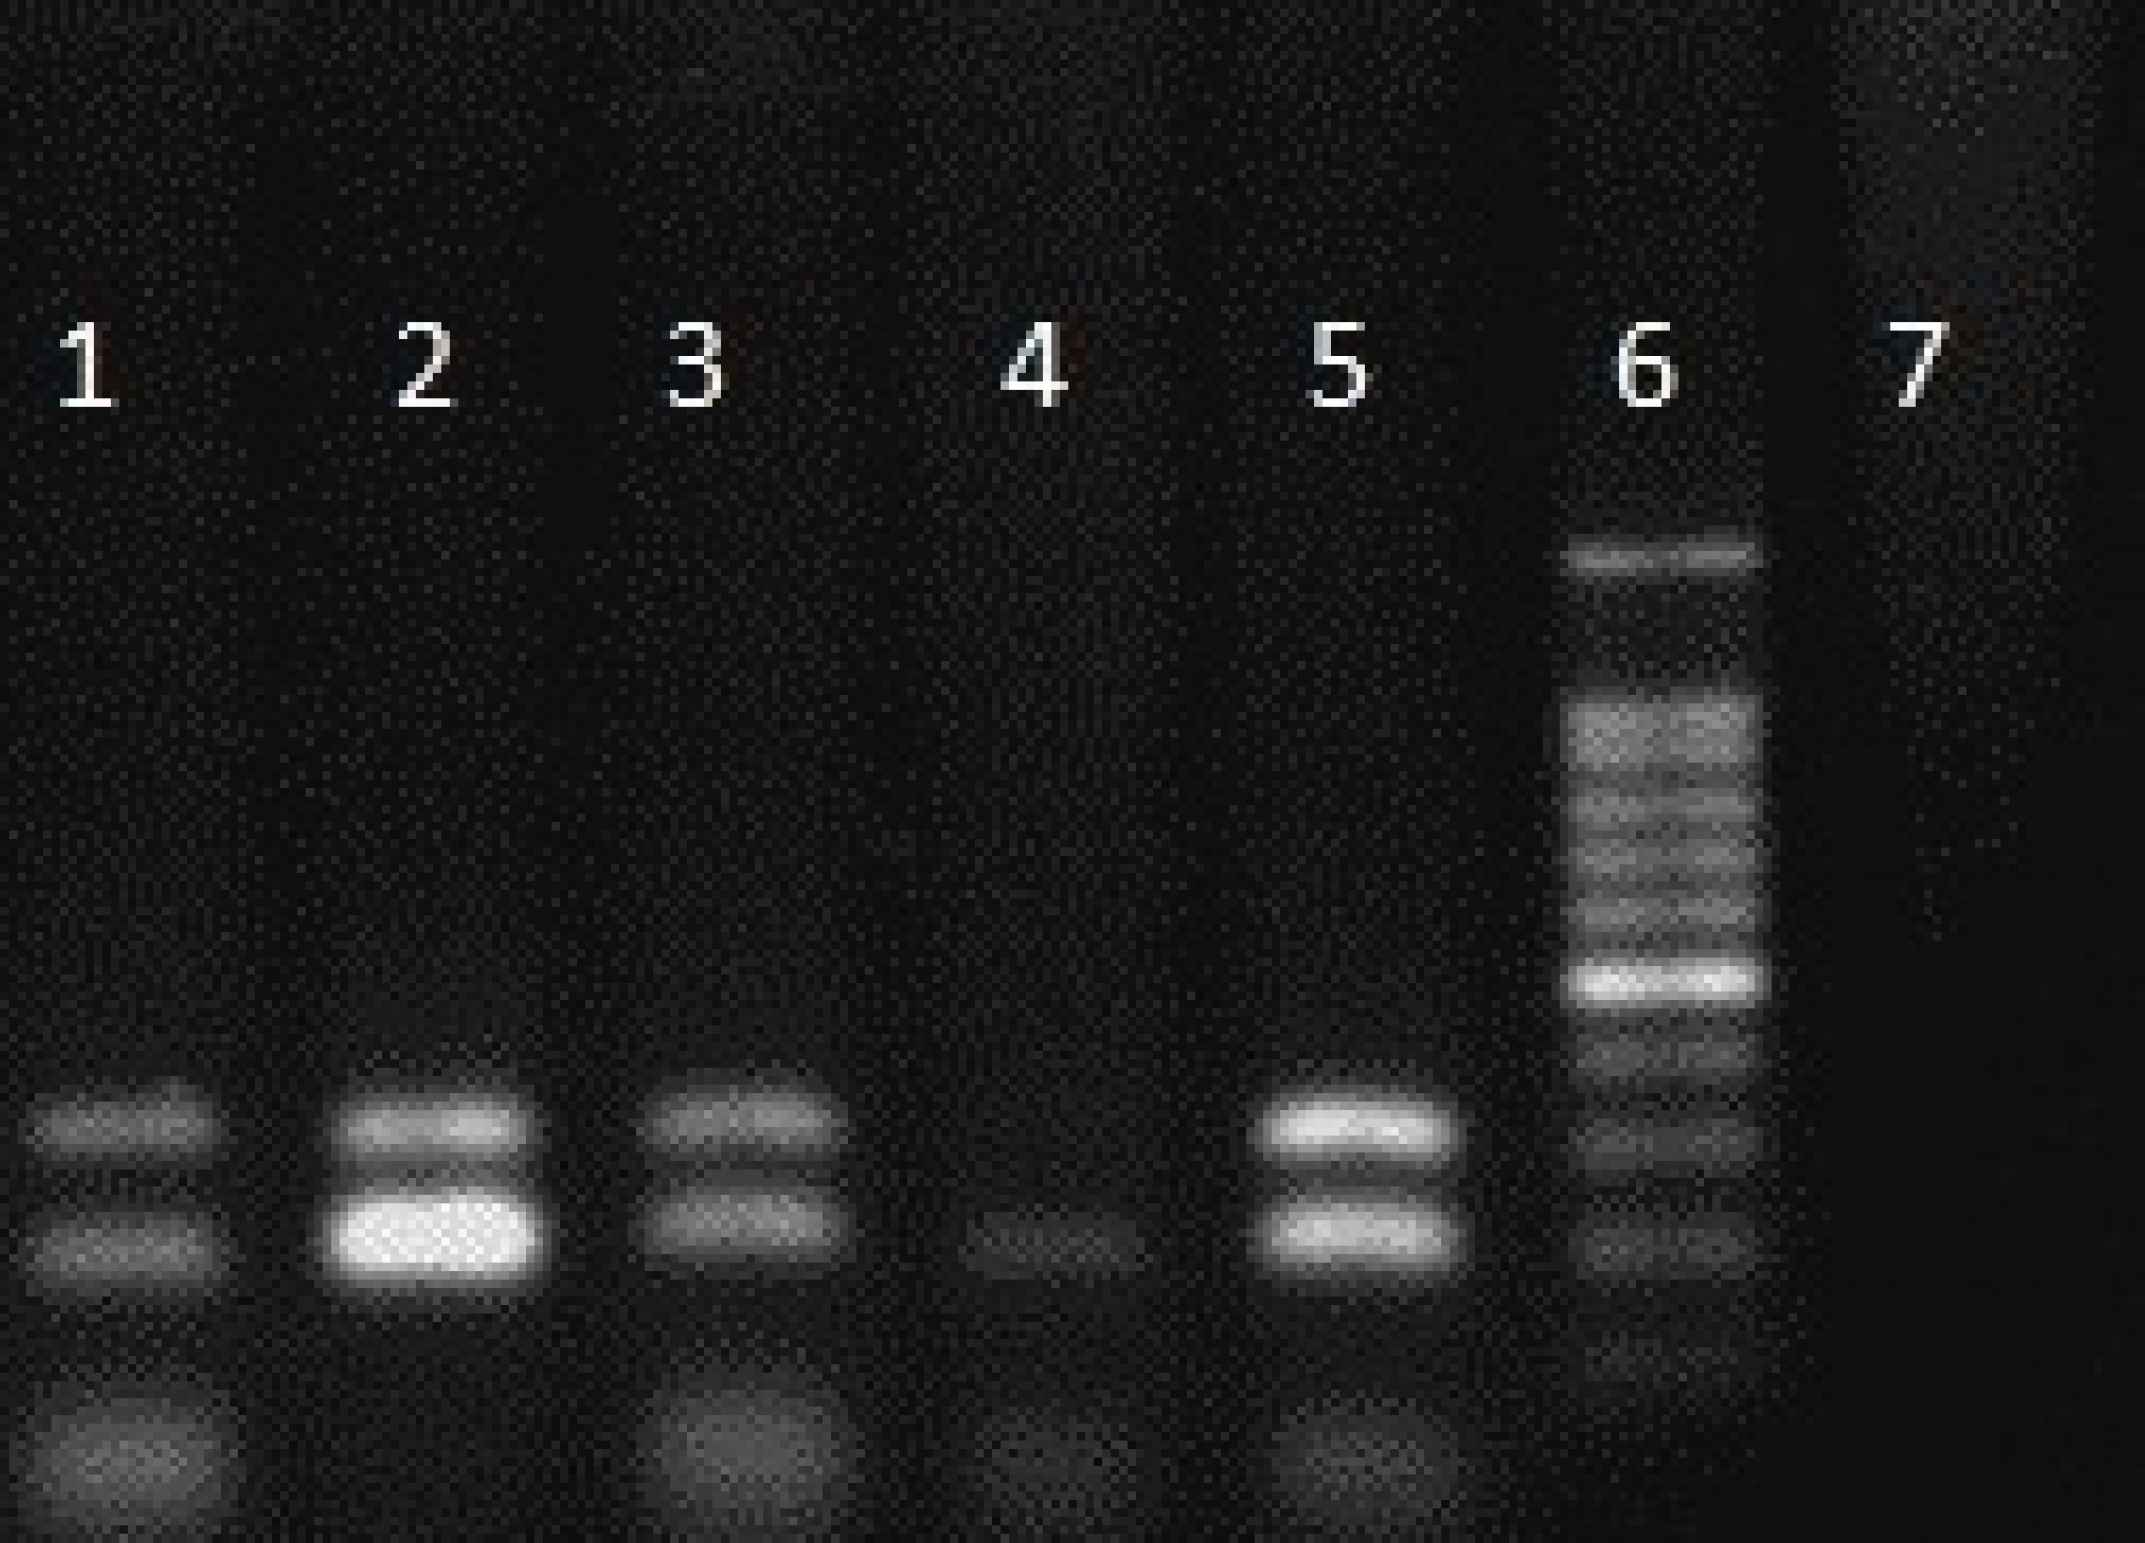 Products of multiplex PCR for eno, cna, ebps and bbp genes. Columns 1- 3: eno and cna genes. Column 6: marker